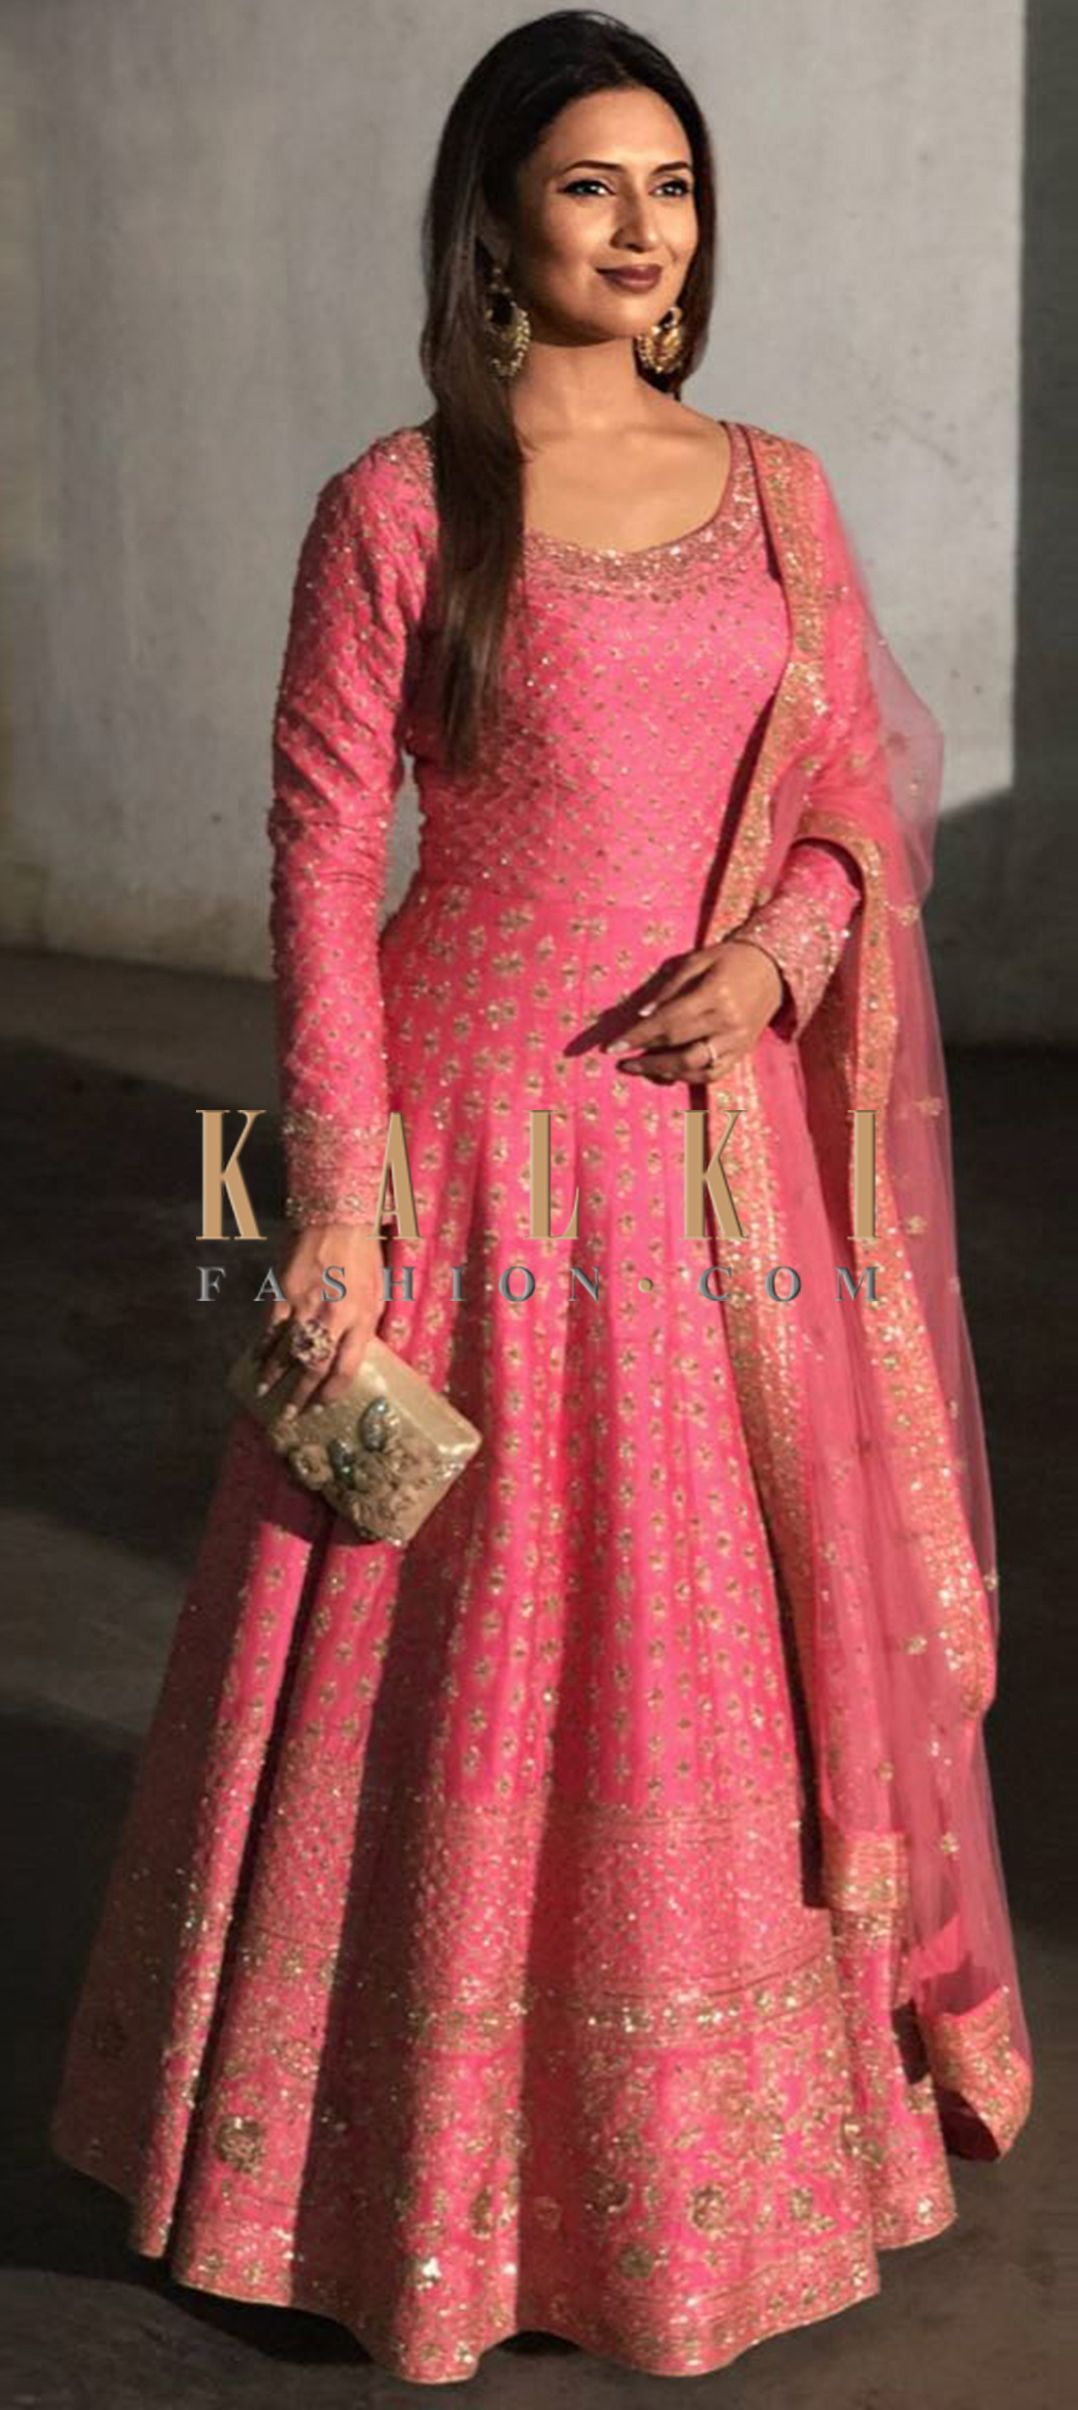 965d73d5d2e66 We ship worldwide (Free Shipping over US$100) Click Anywhere to Tag Divyanka  Tripathi in Kalki candy pink anarkali suit adorn in delicate zari embroidery  ...